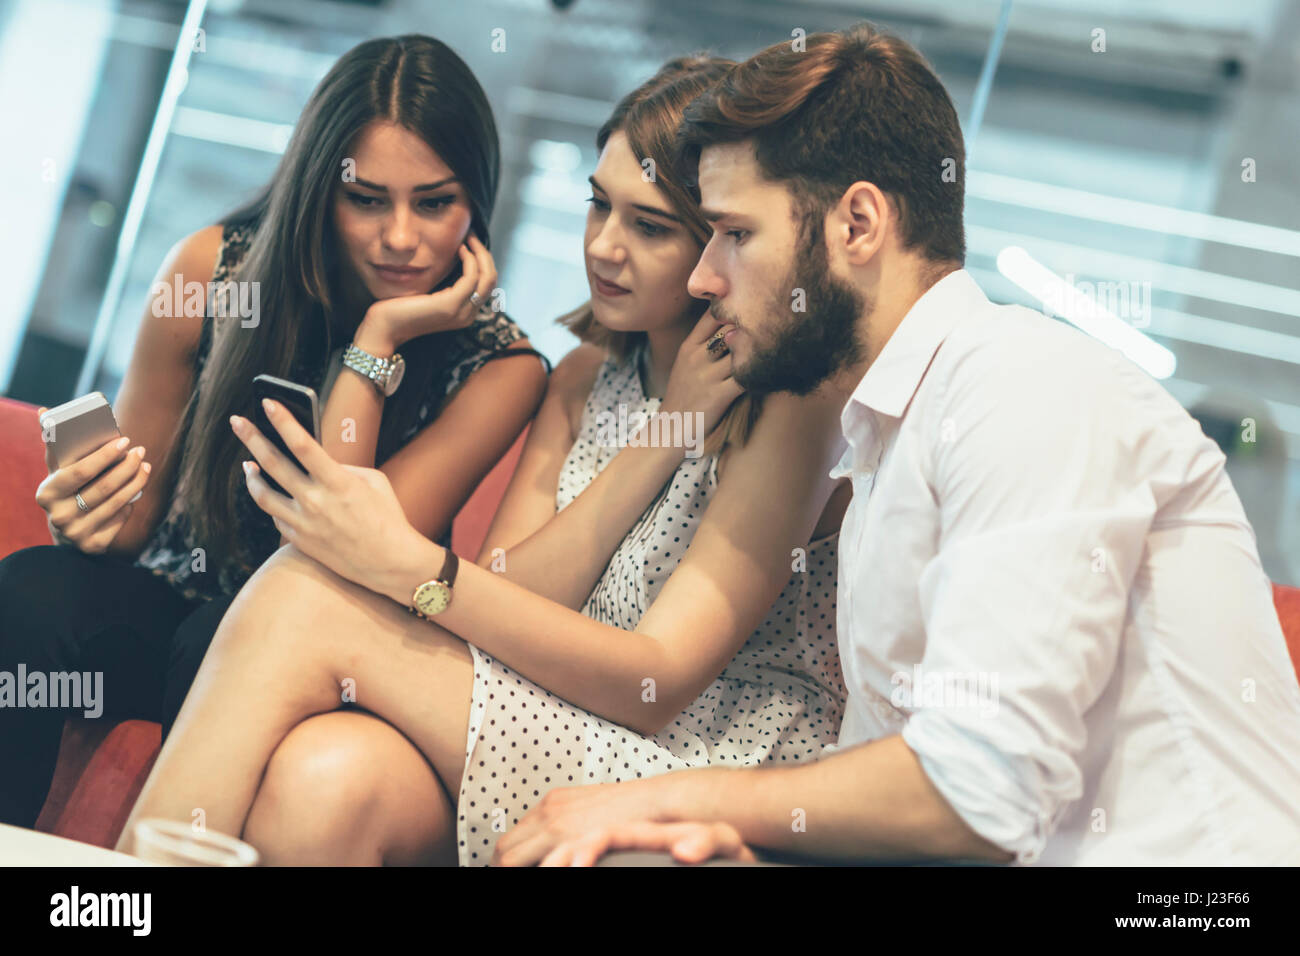 Young people using their cell phones and staying always connected - Stock Image